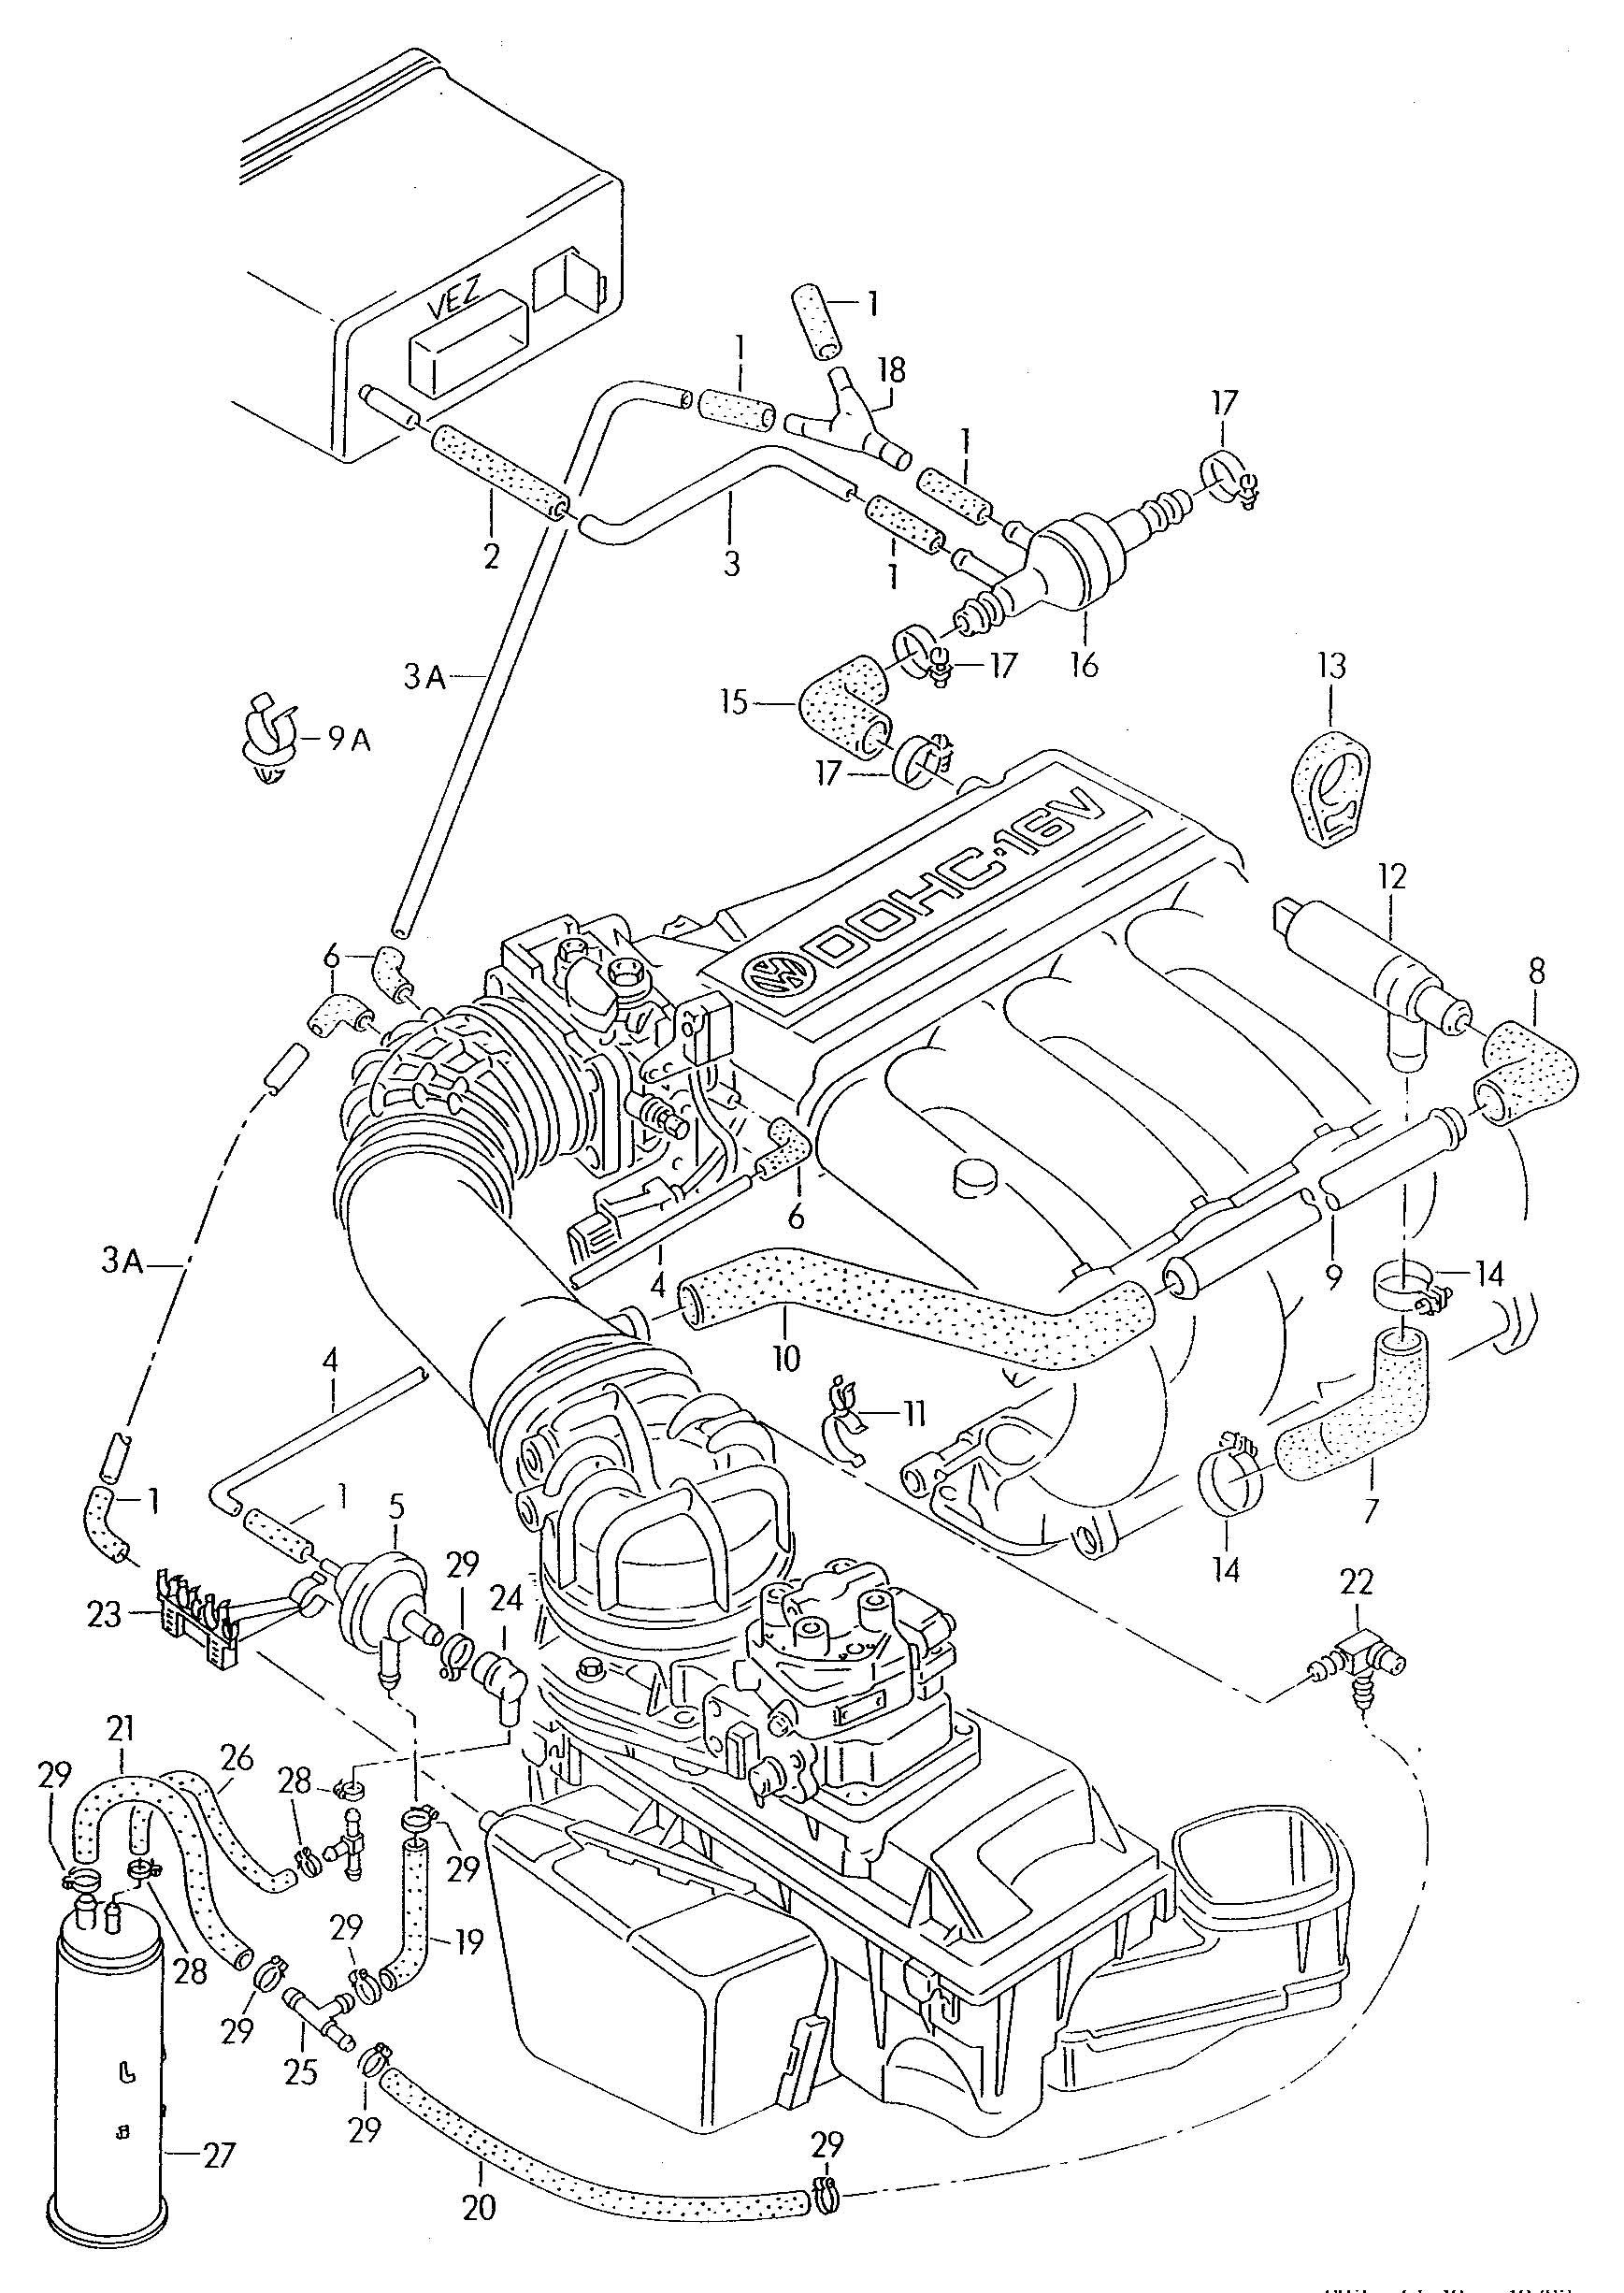 Vw Cabriolet Vacuum Diagram, Vw, Free Engine Image For